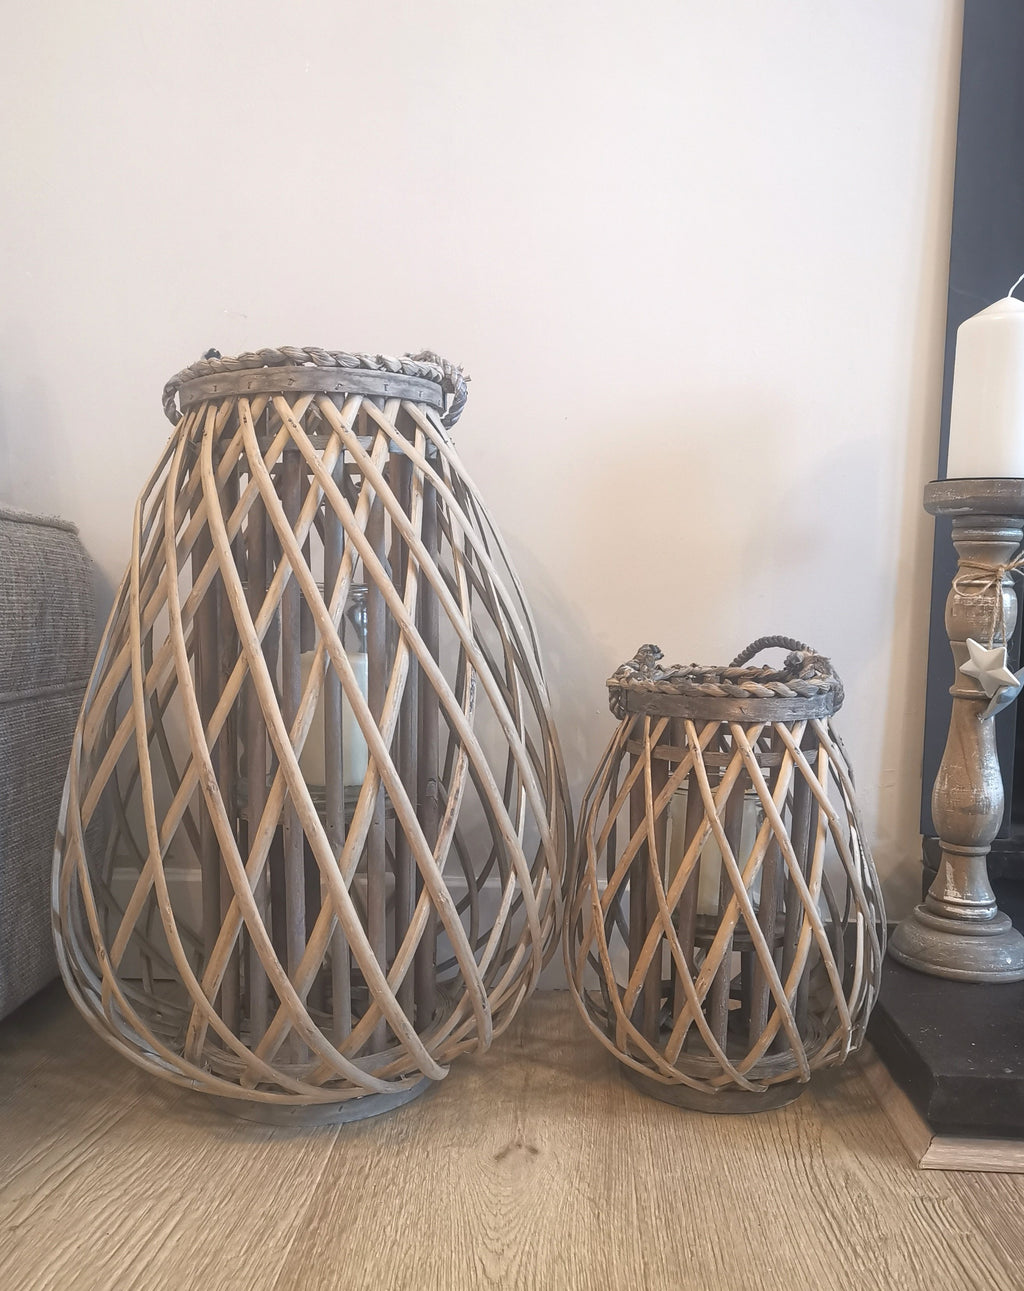 Rustic Wicker Domed Lanterns - TBI